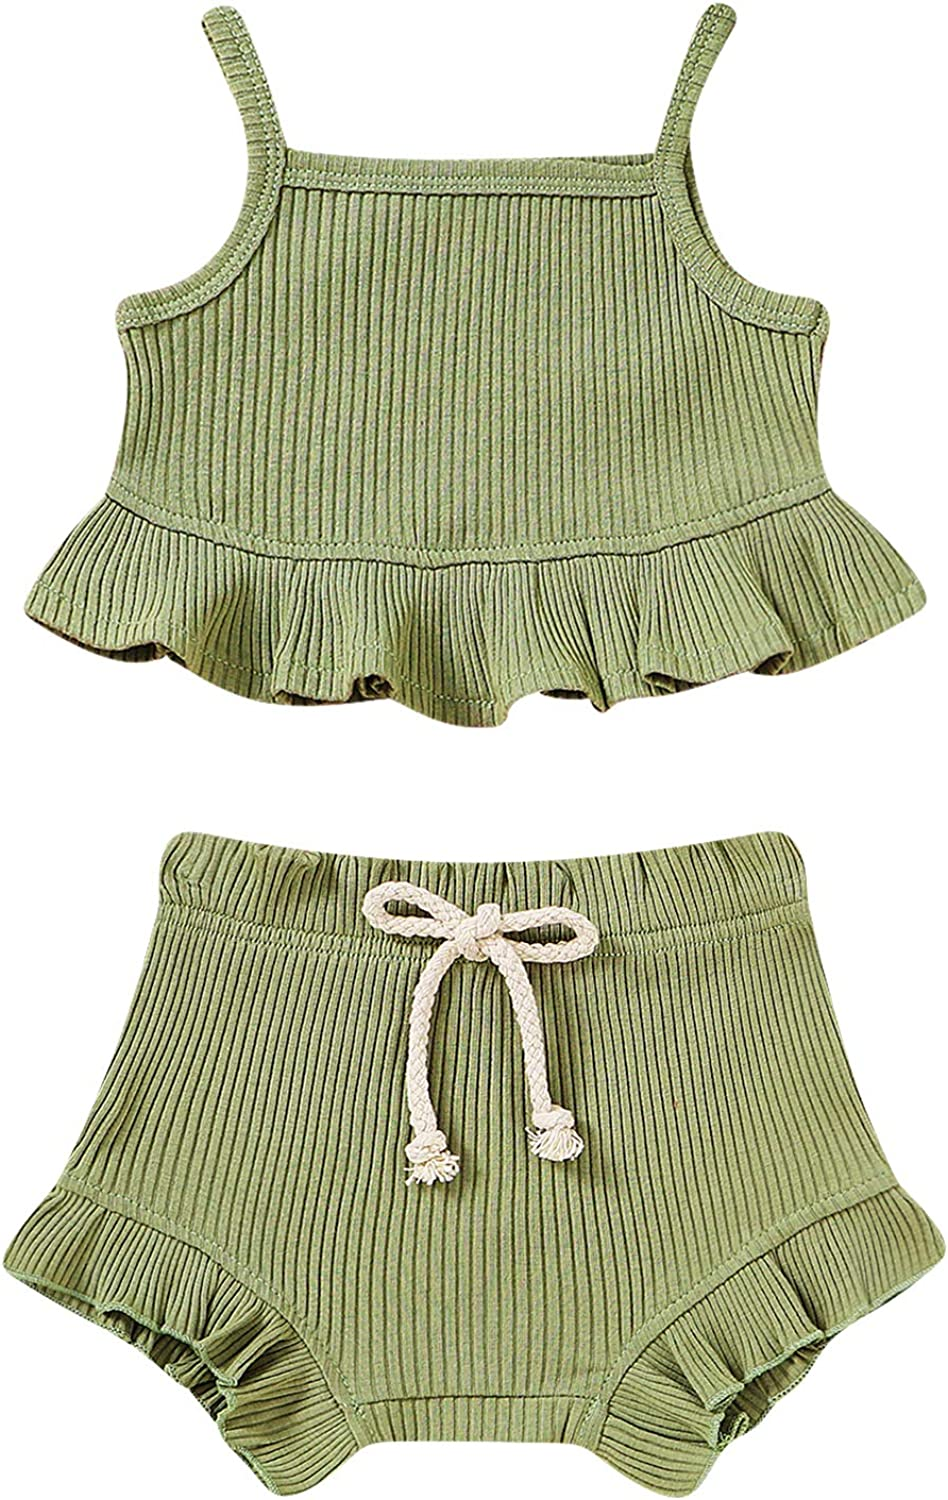 Toddler Newborn Baby Girl Summer Halter Ruffle Short Clothes Cheap mail order specialty store Max 76% OFF Set